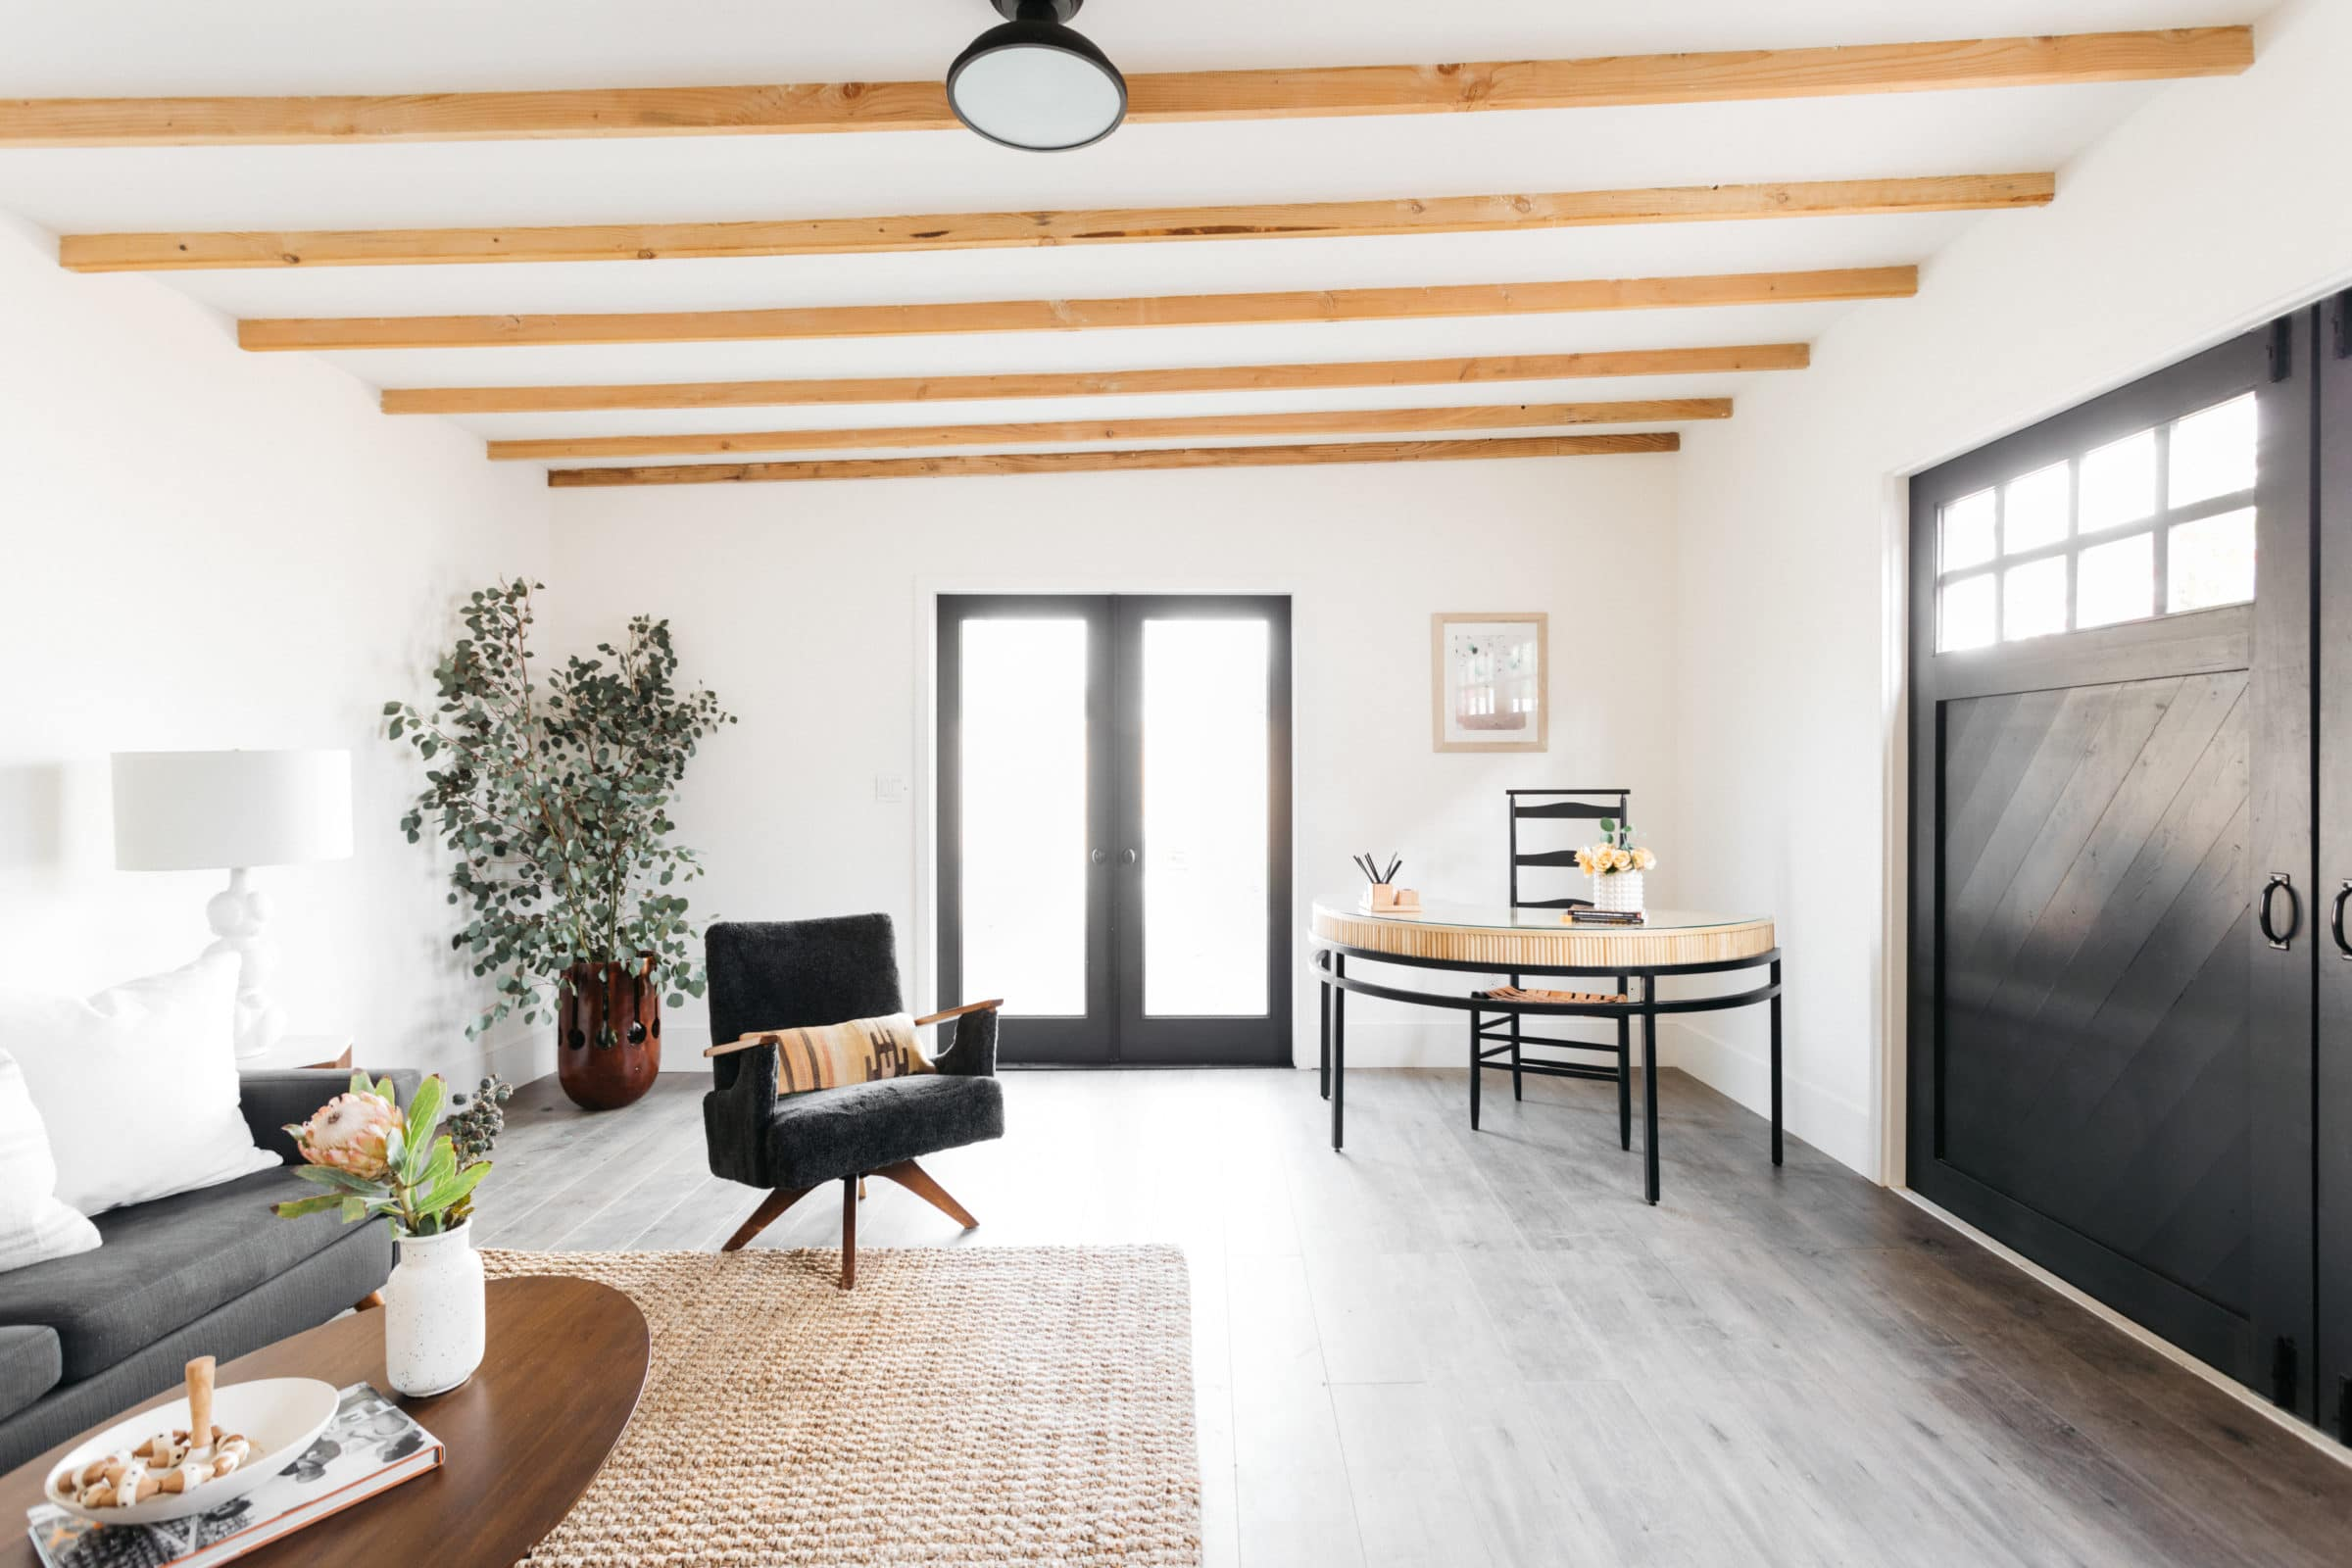 acme real estate blog interior design home office space laurel canyon